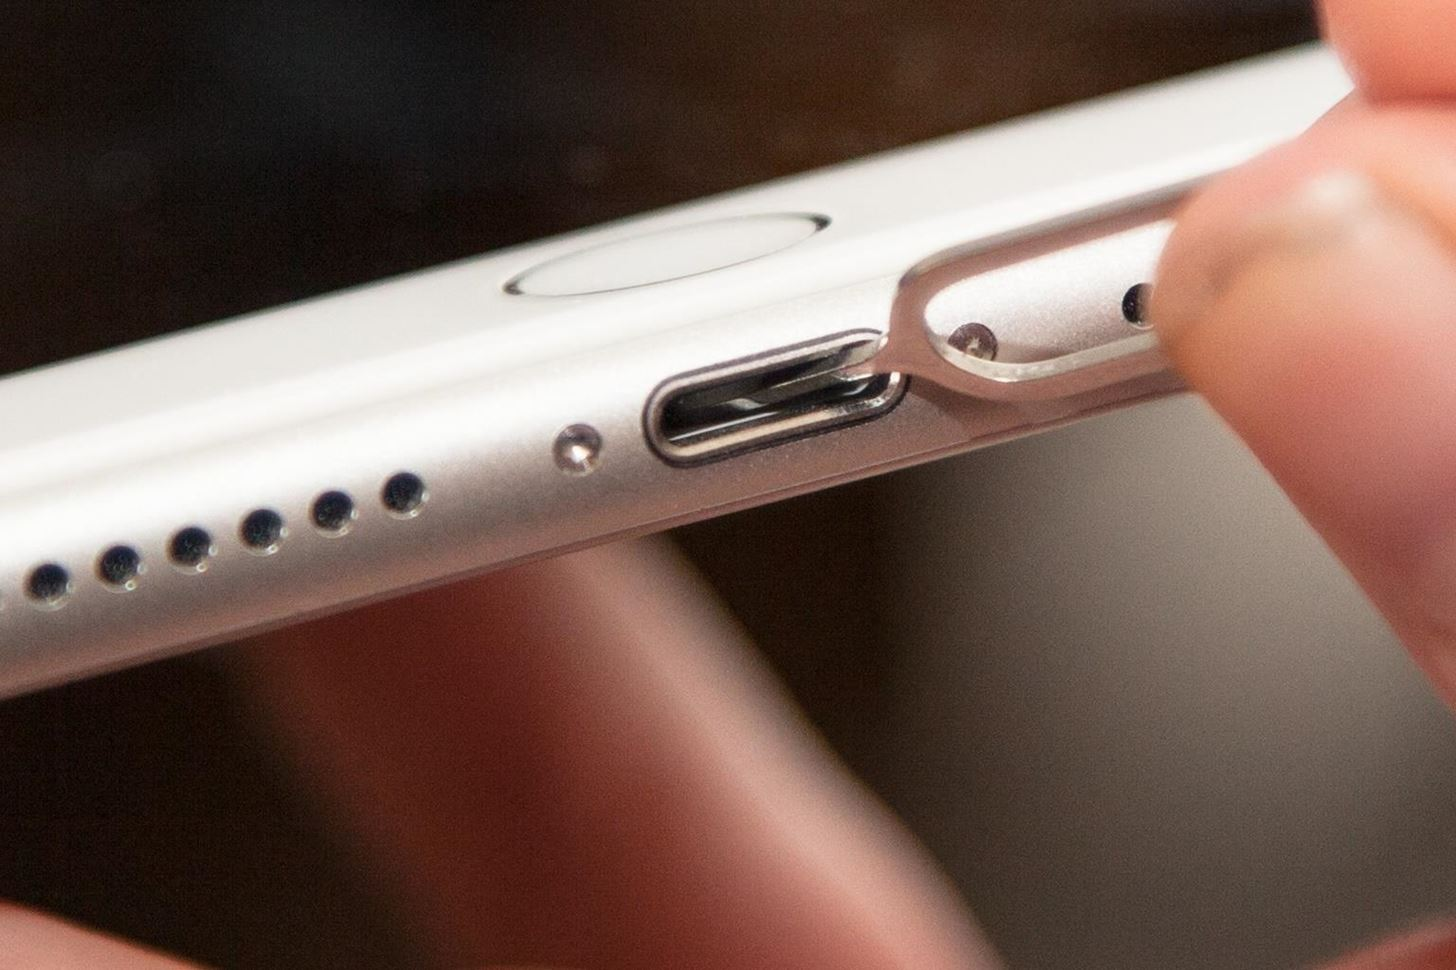 How to Fix an iPad, iPhone, or iPod Touch That Won't Charge Anymore